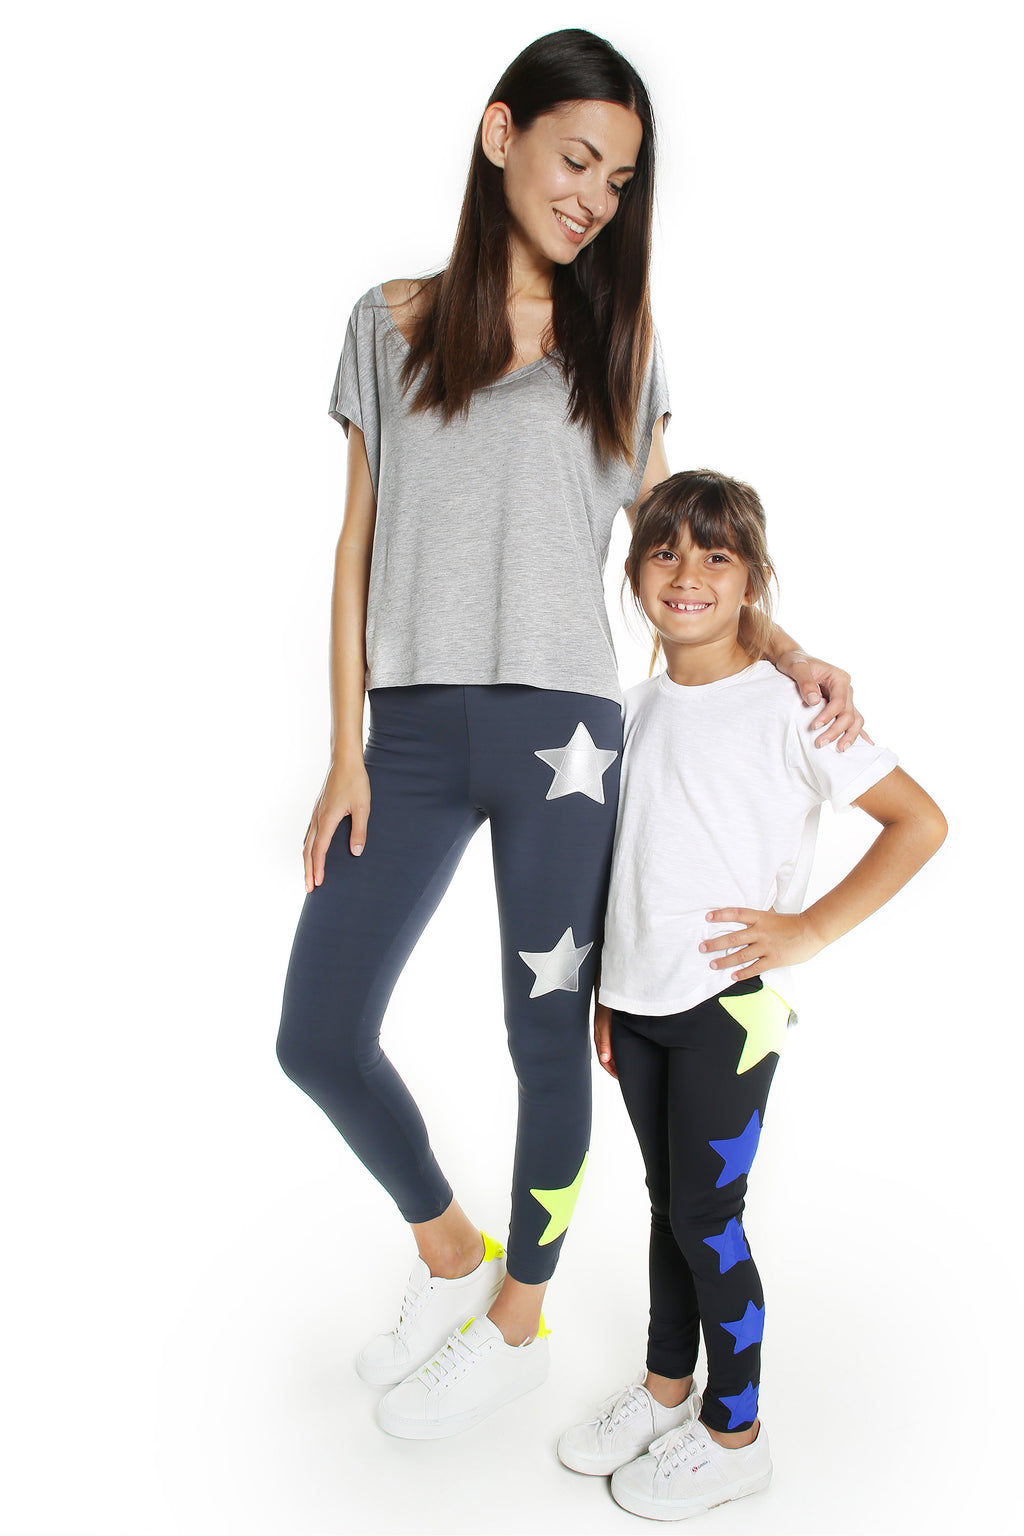 Leggings Bundle Donna e Bambina Leggings in lycra grigio piombo con stelle applicate argento e giallo fluo